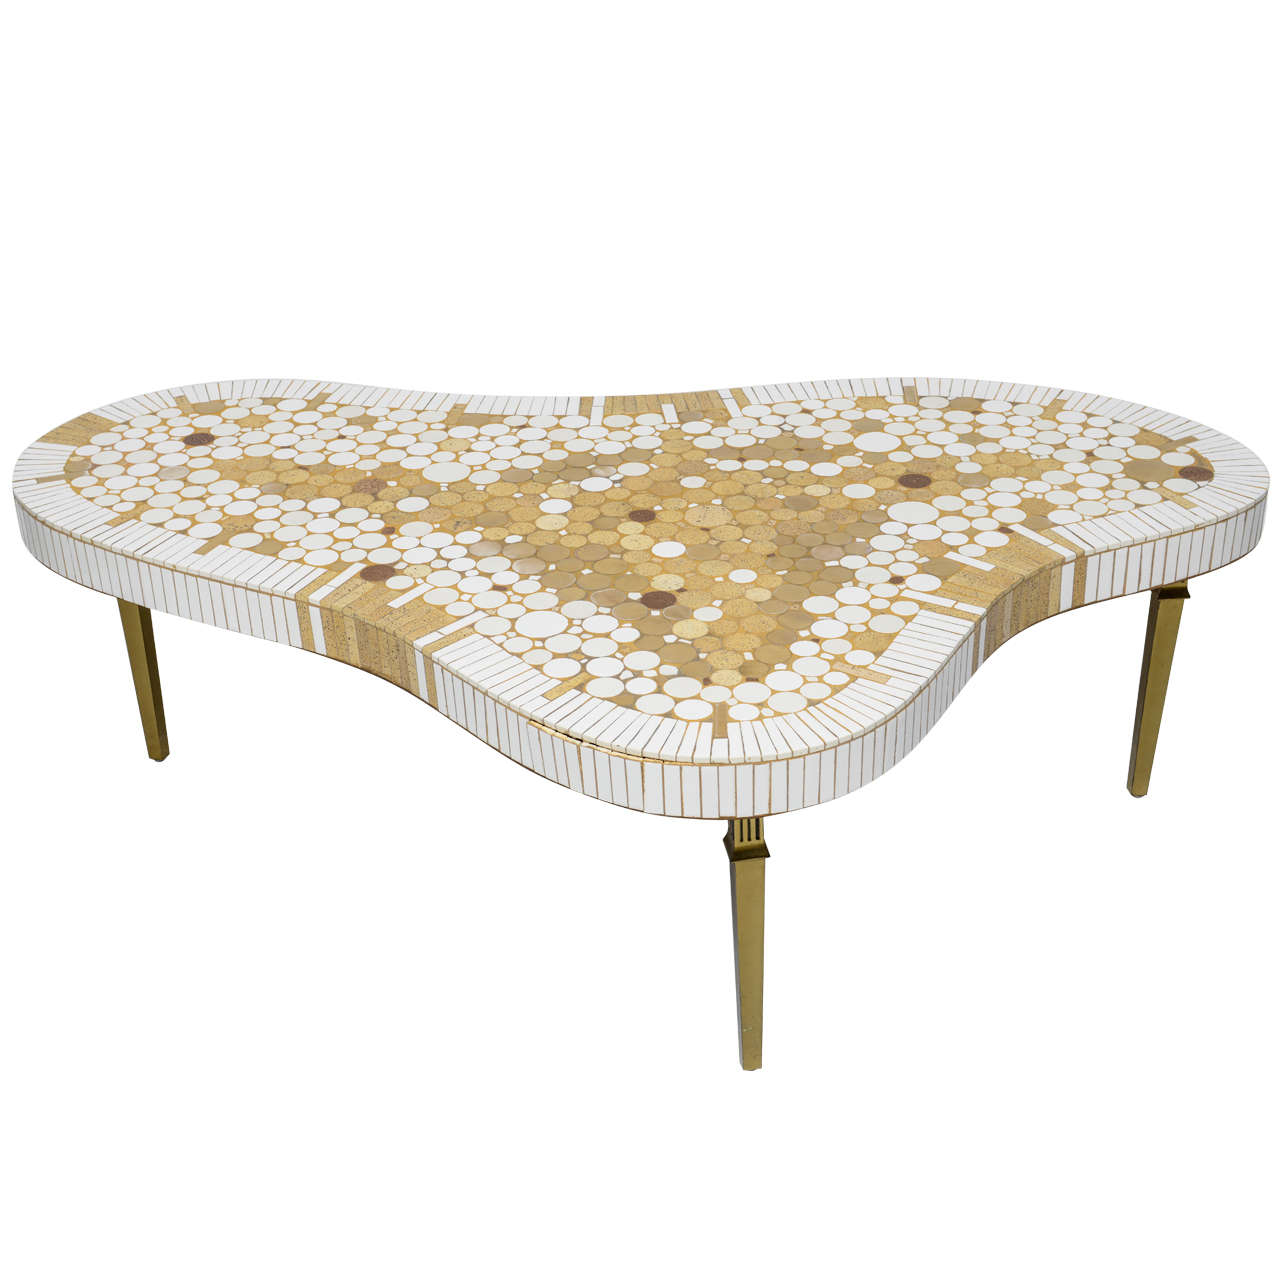 50s tile coffee table by richard hohenberg at 1stdibs 50s tile coffee table by richard hohenberg 1 geotapseo Image collections